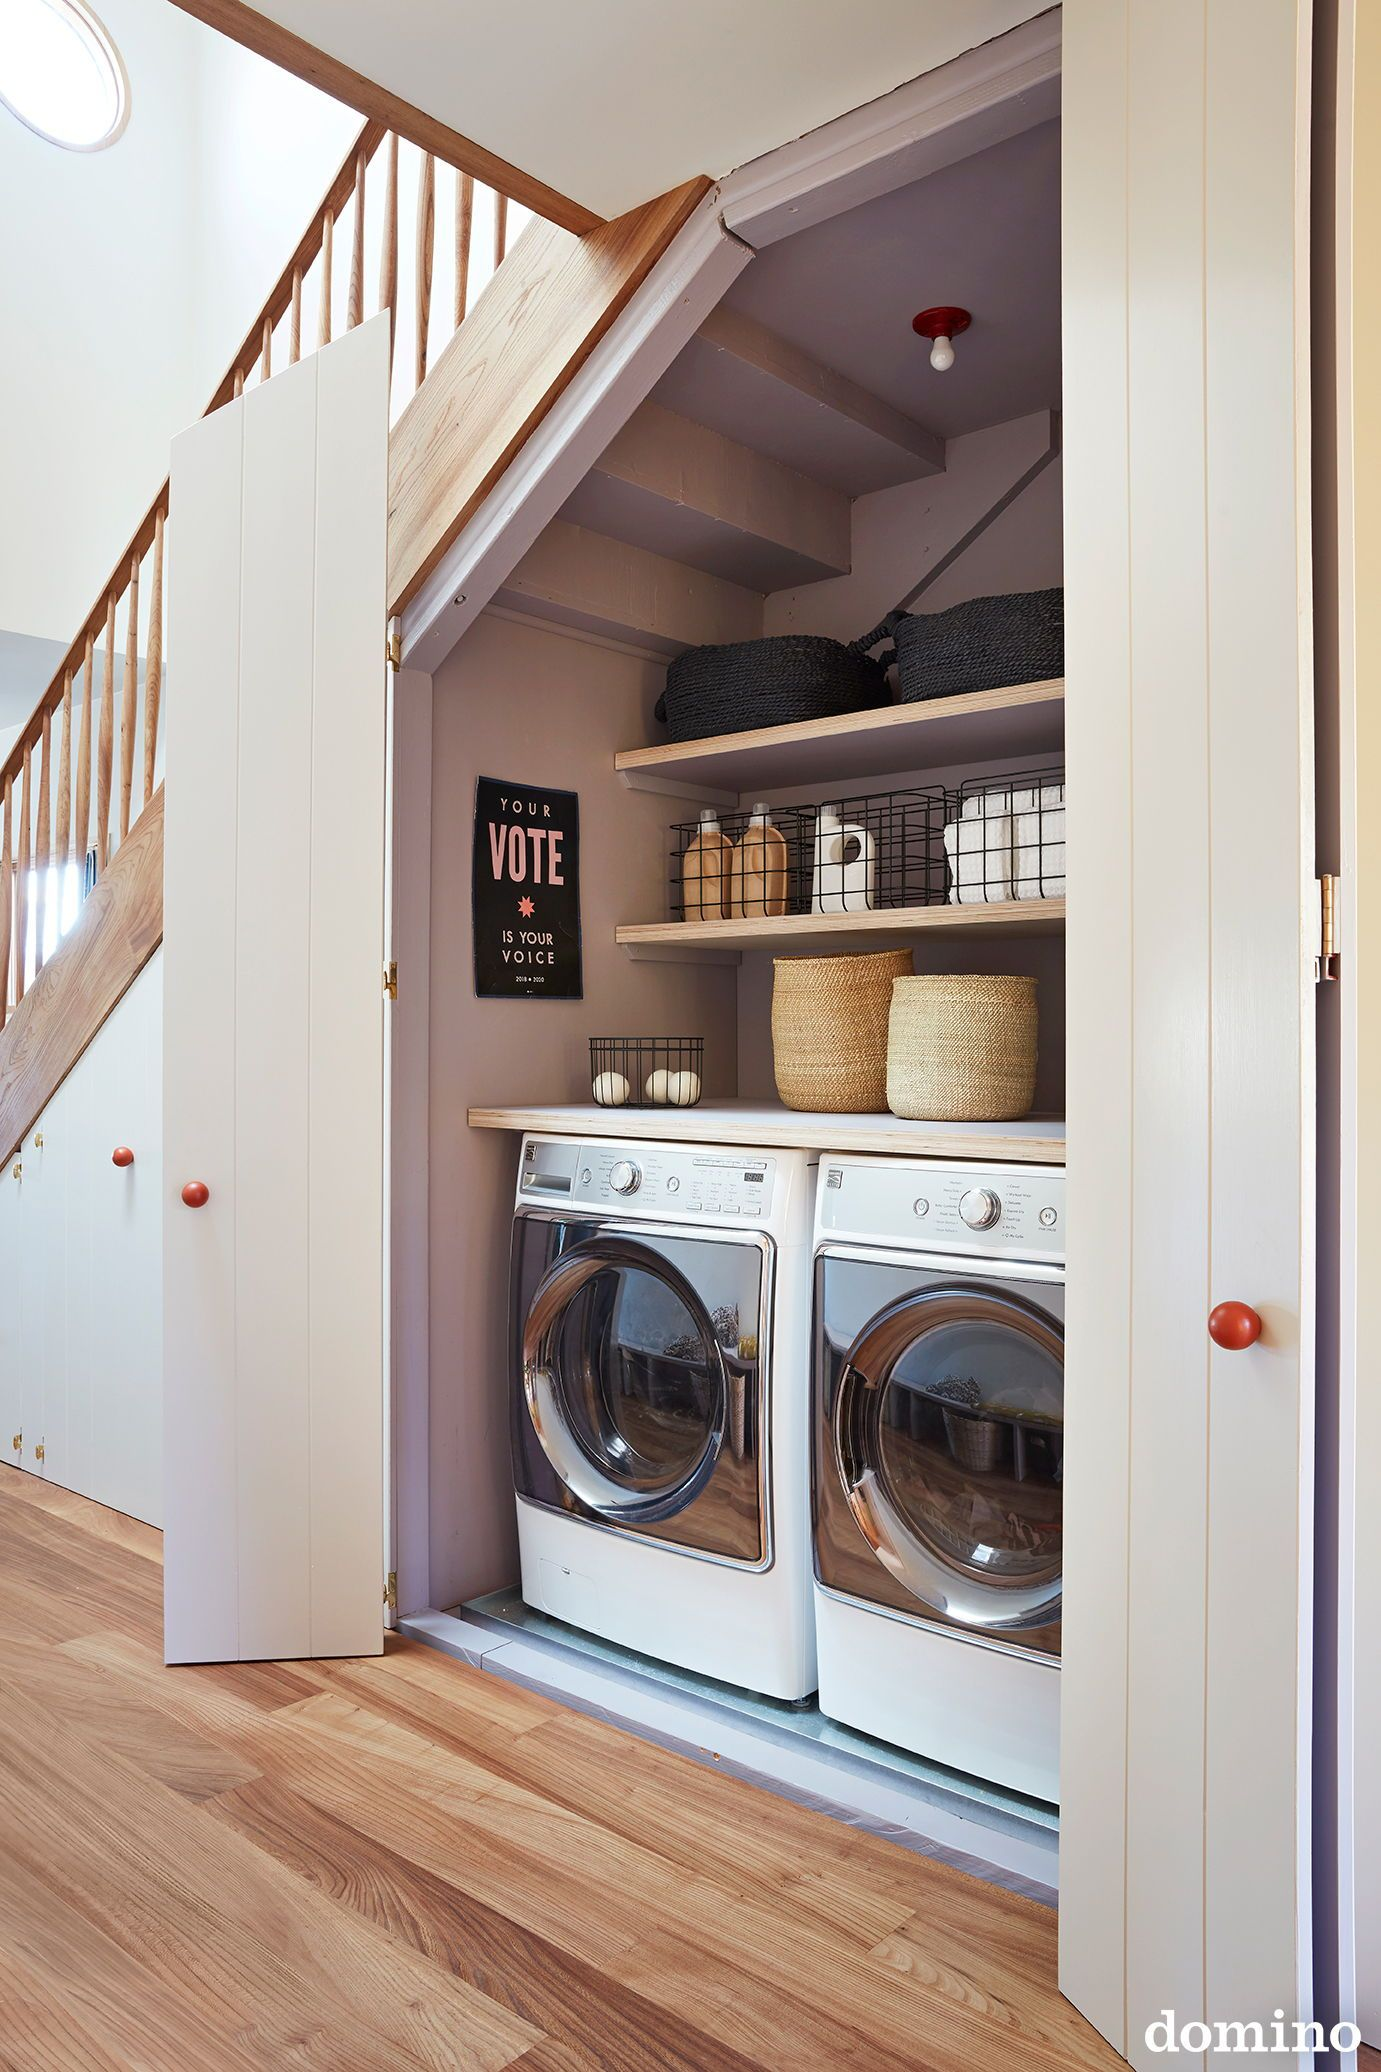 This San Francisco Couple S Home Renovation Came Together Thanks To Their Community Of Creatives Tiny Laundry Rooms Laundry Room Storage Laundry Room Organization